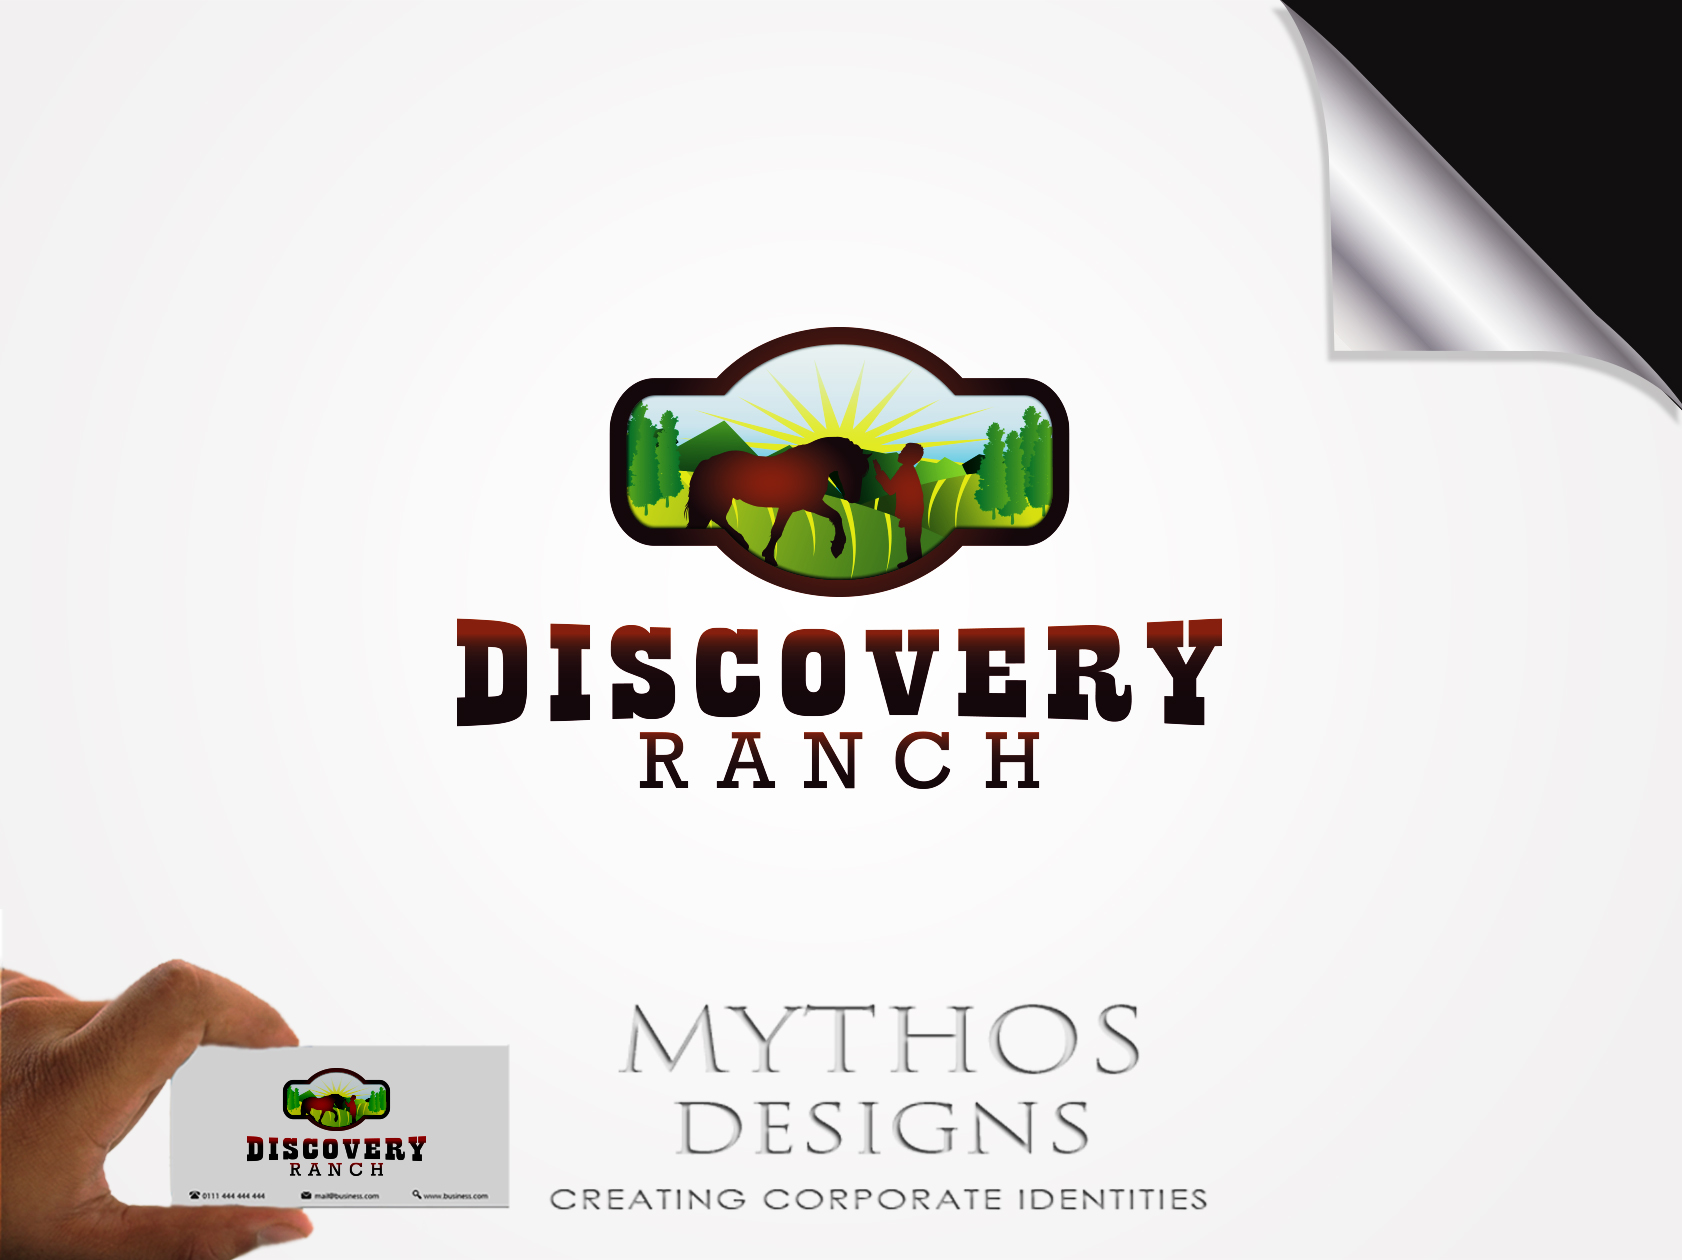 Logo Design by Mythos Designs - Entry No. 98 in the Logo Design Contest Creative Logo Design for Discovery Ranch.